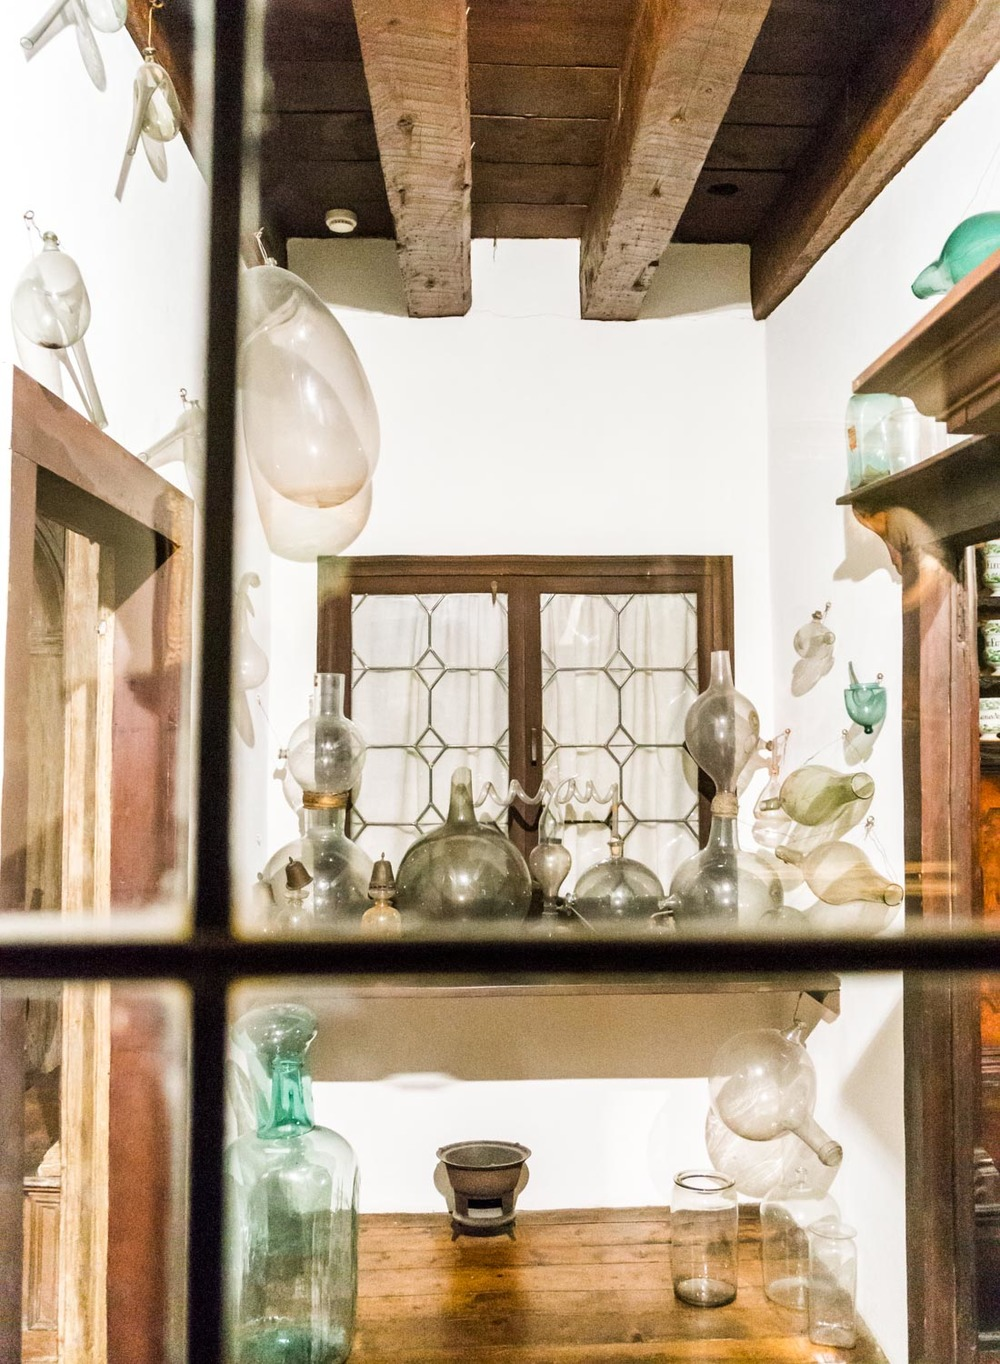 The apothecary inside the house